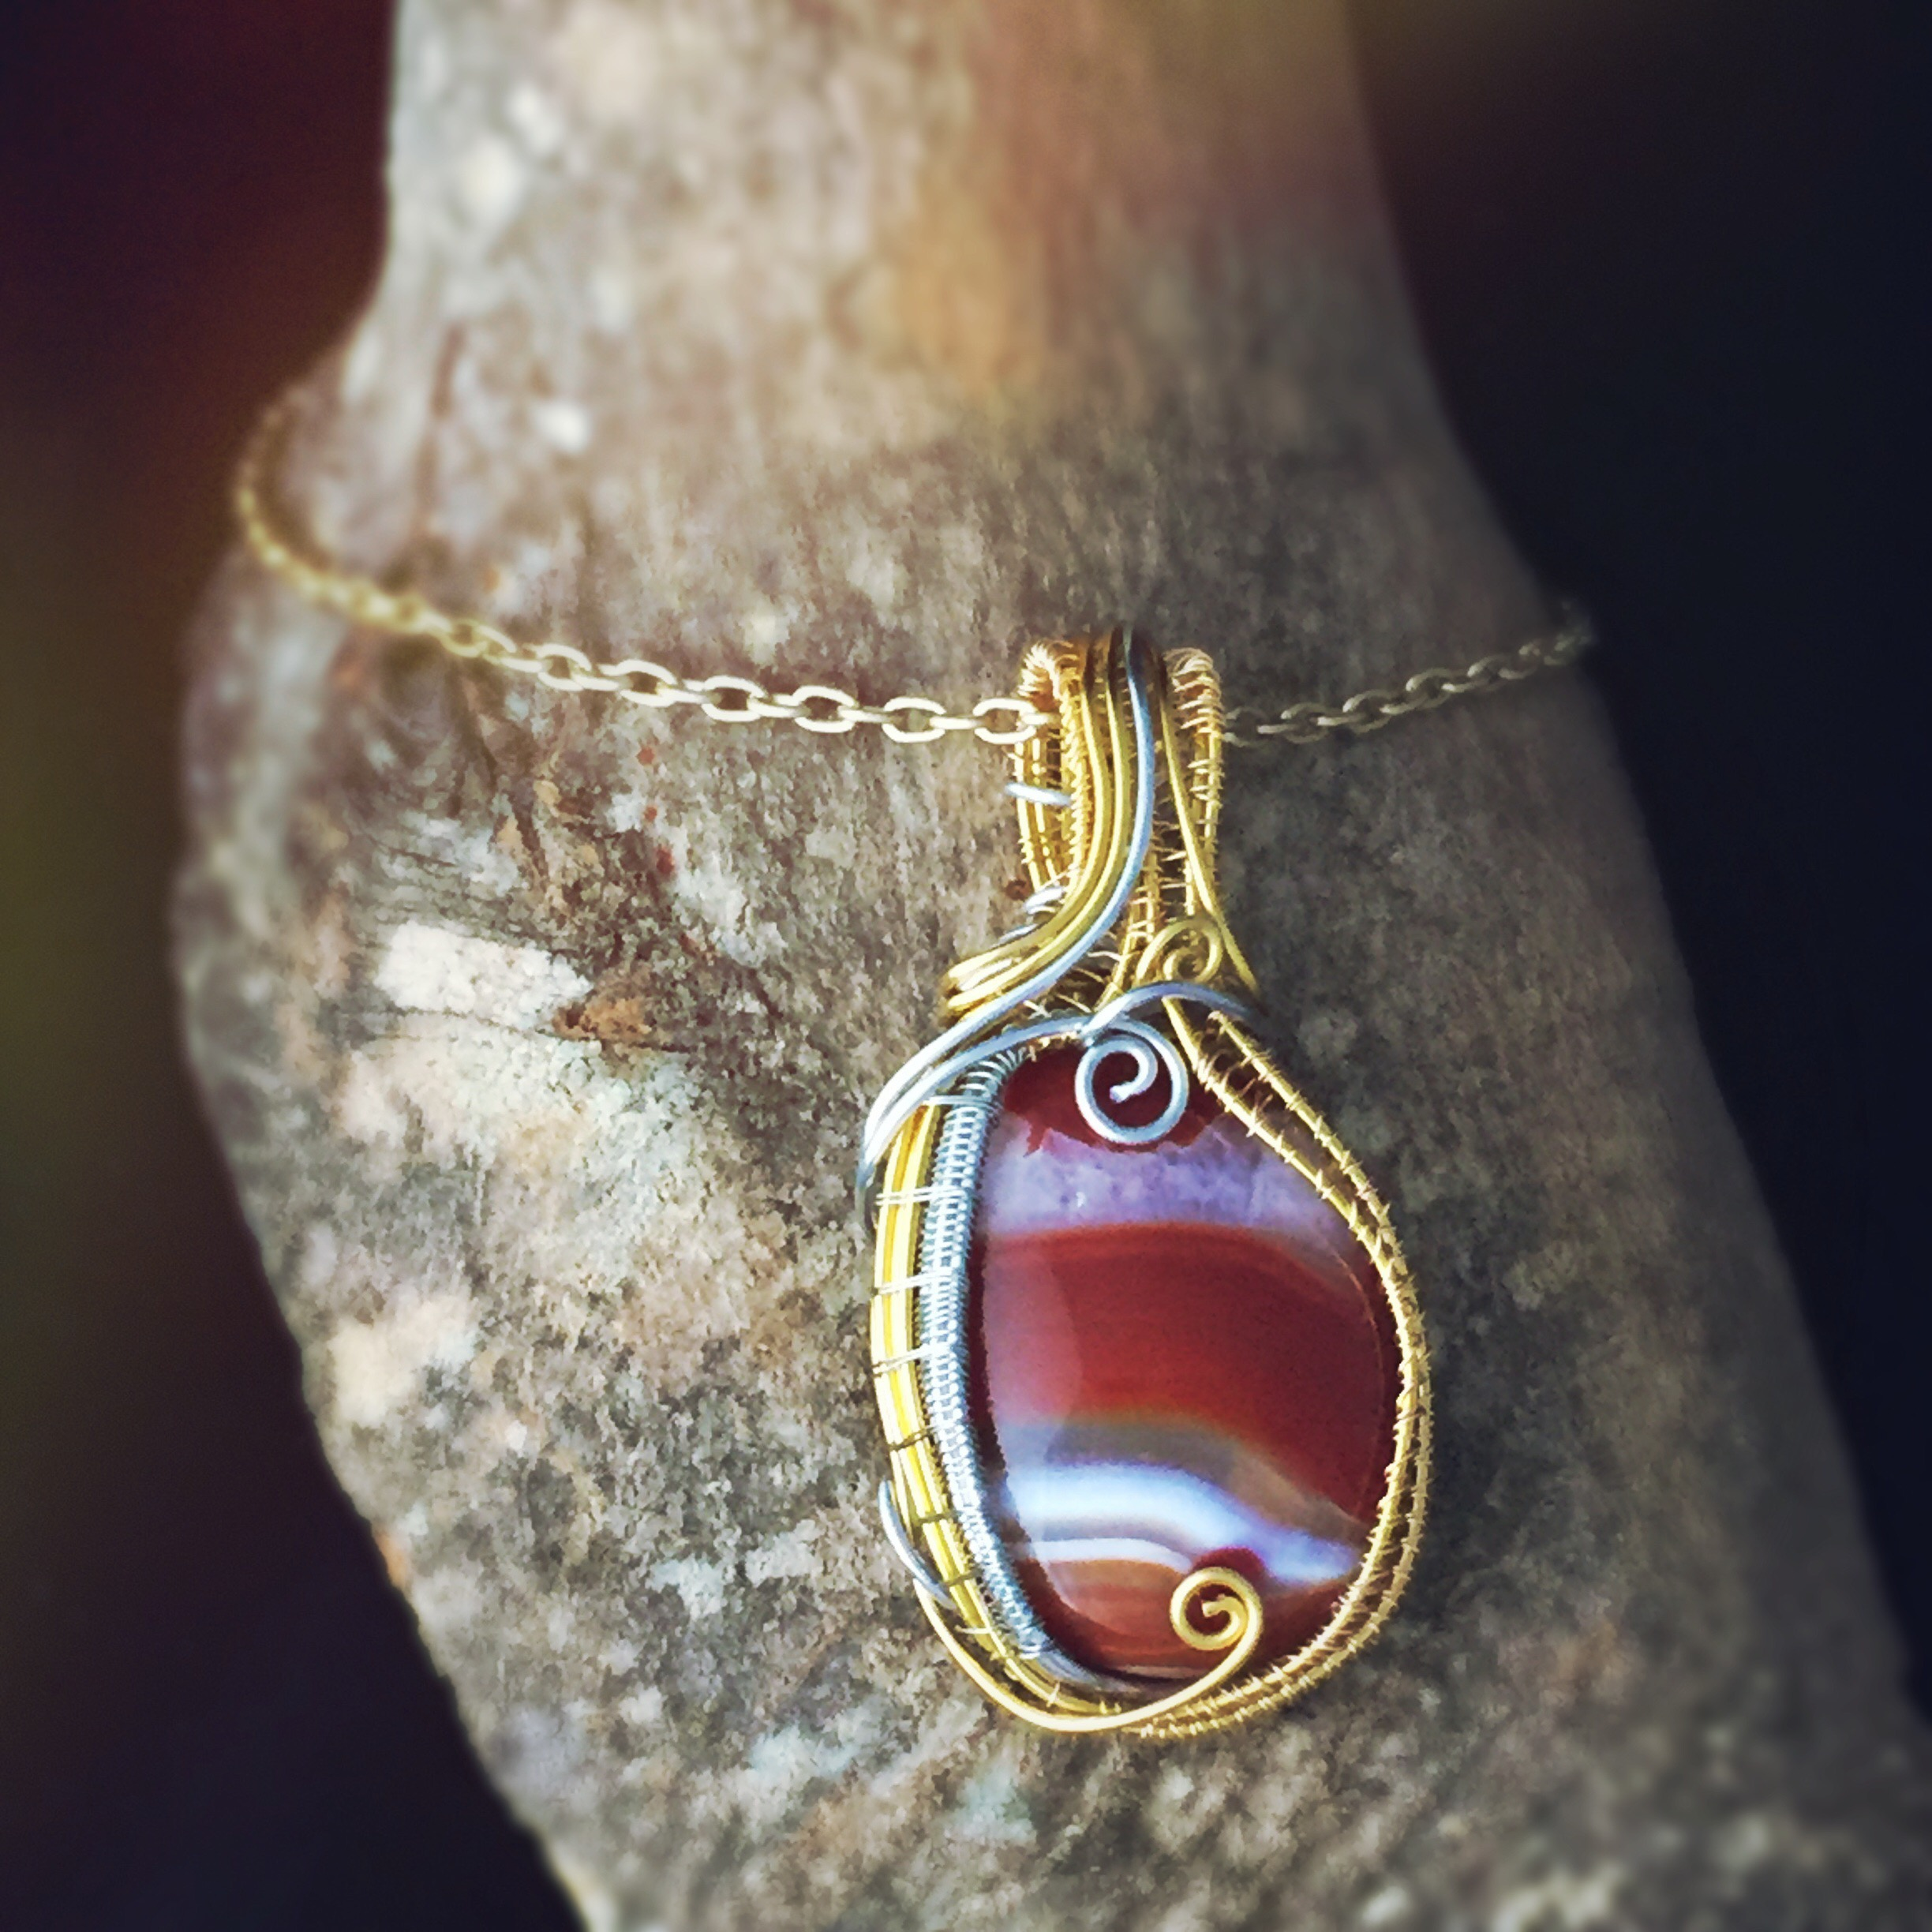 Wire Wrapped Carnelian Stone, awesome healing crystal for Leo Sun Sign! By And Zen Some